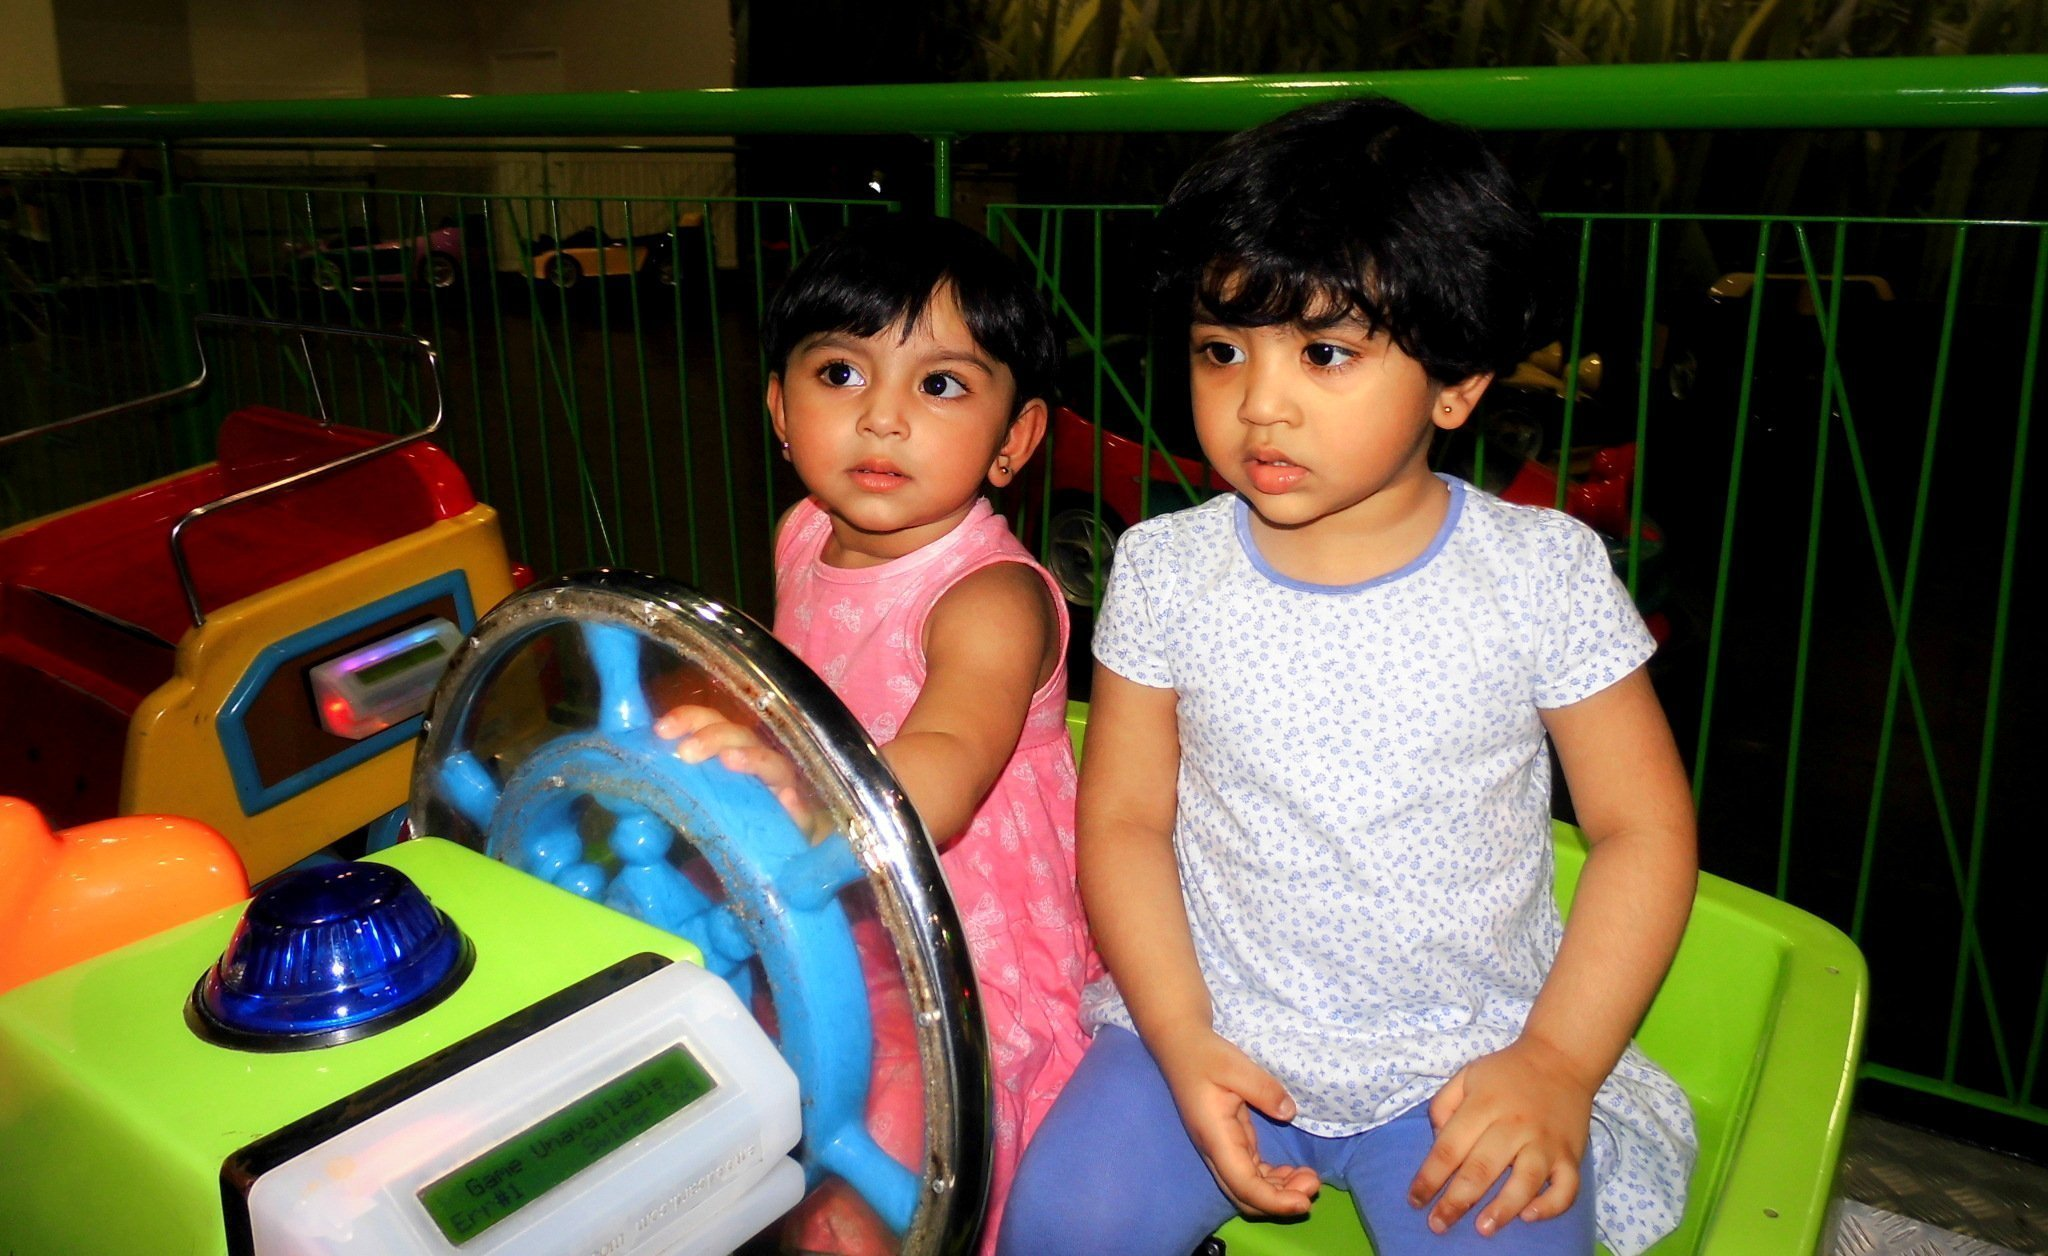 Children's rights | Utaybah and Umaiza | Daughters | Dear Daughter